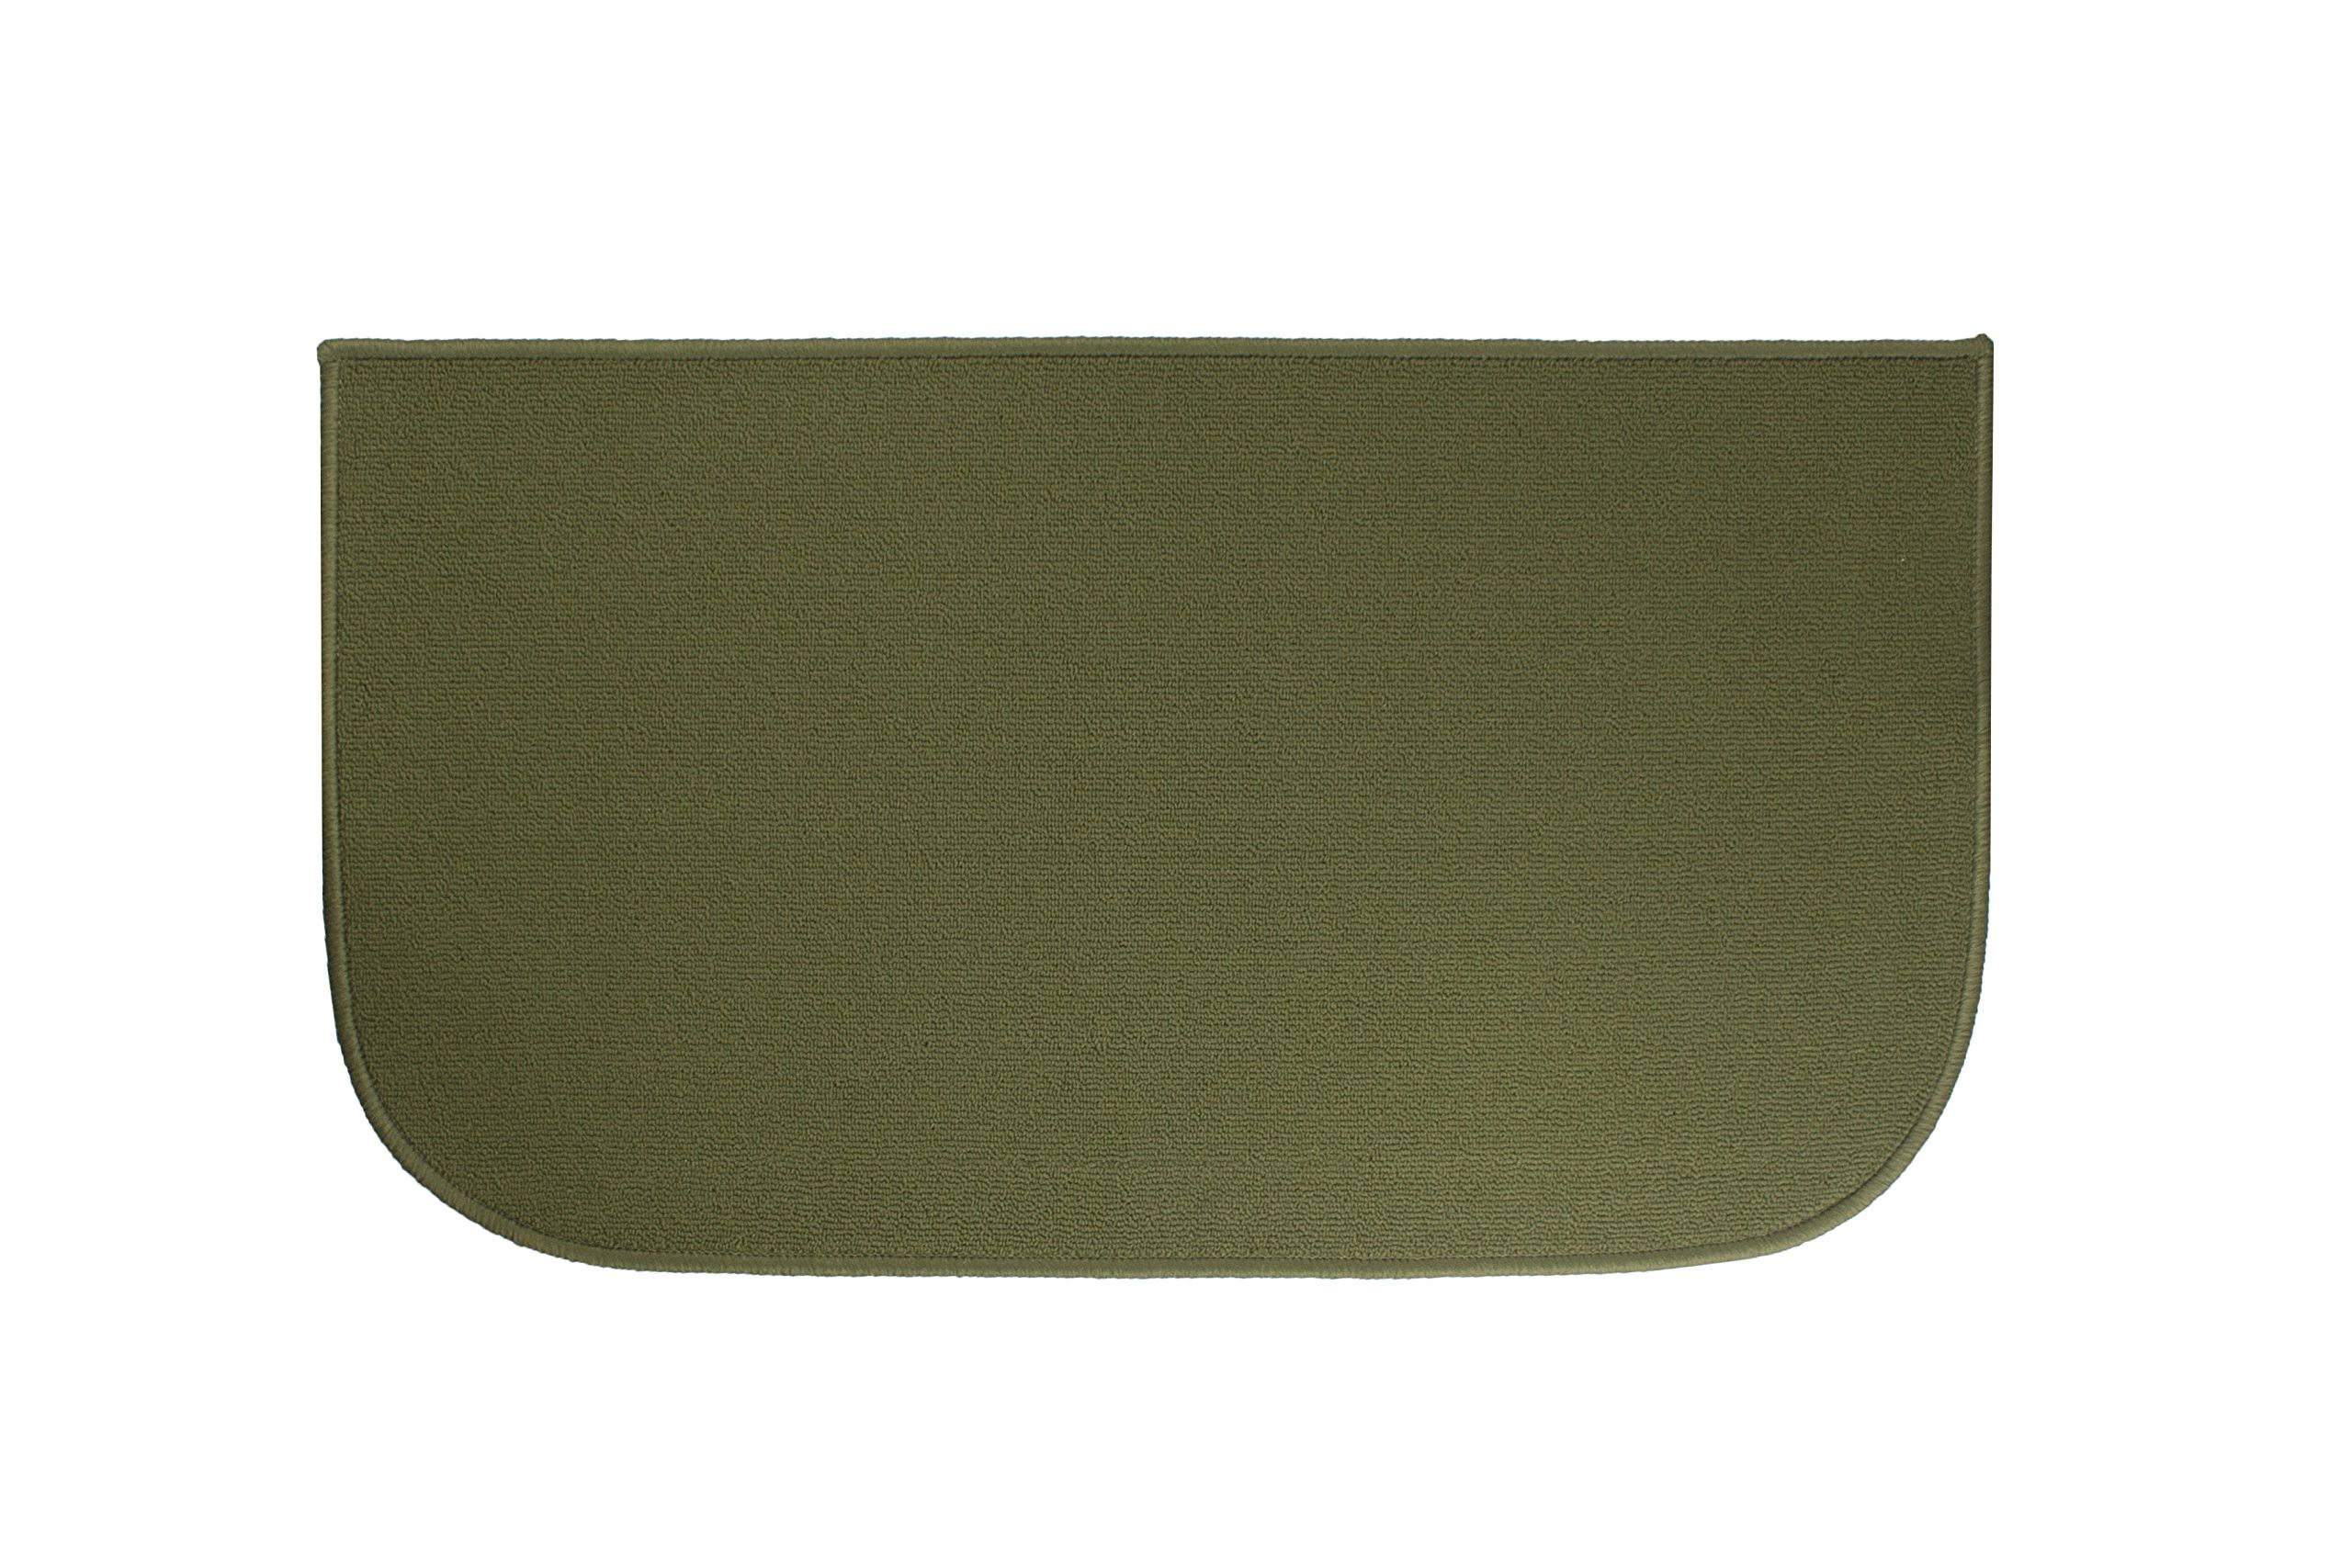 Ritz Accent Kitchen Rug With Latex Backing - Olive Green